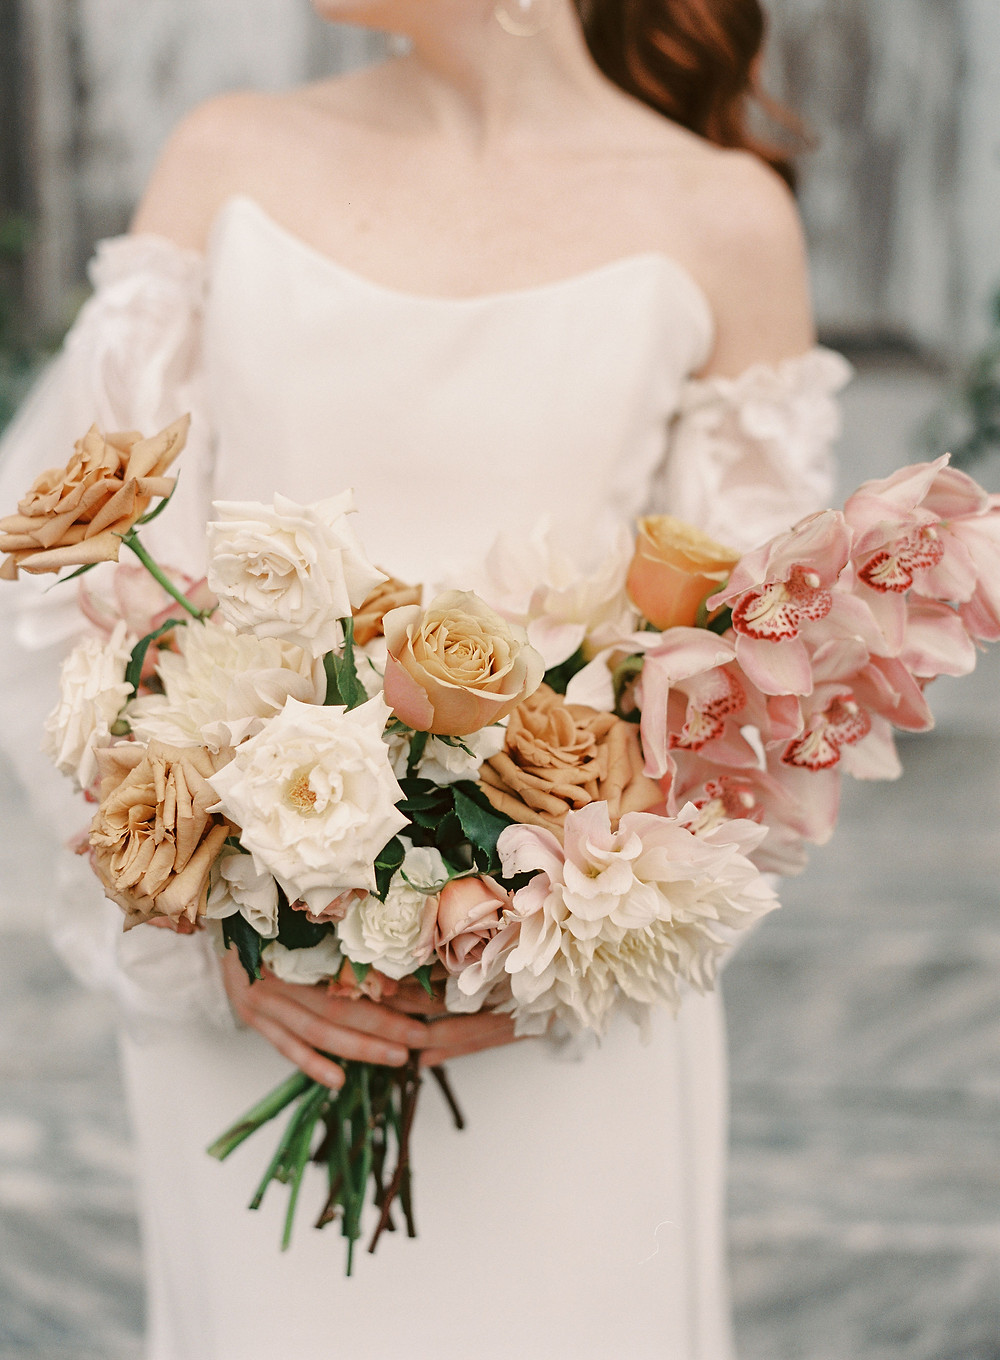 Leaf + Petal wedding, Marigny Opera House, garden flower bridal bouquet, wedding bouquet, toffee roses, orchids, Alexandra Grecco dress, Bridgerton wedding,